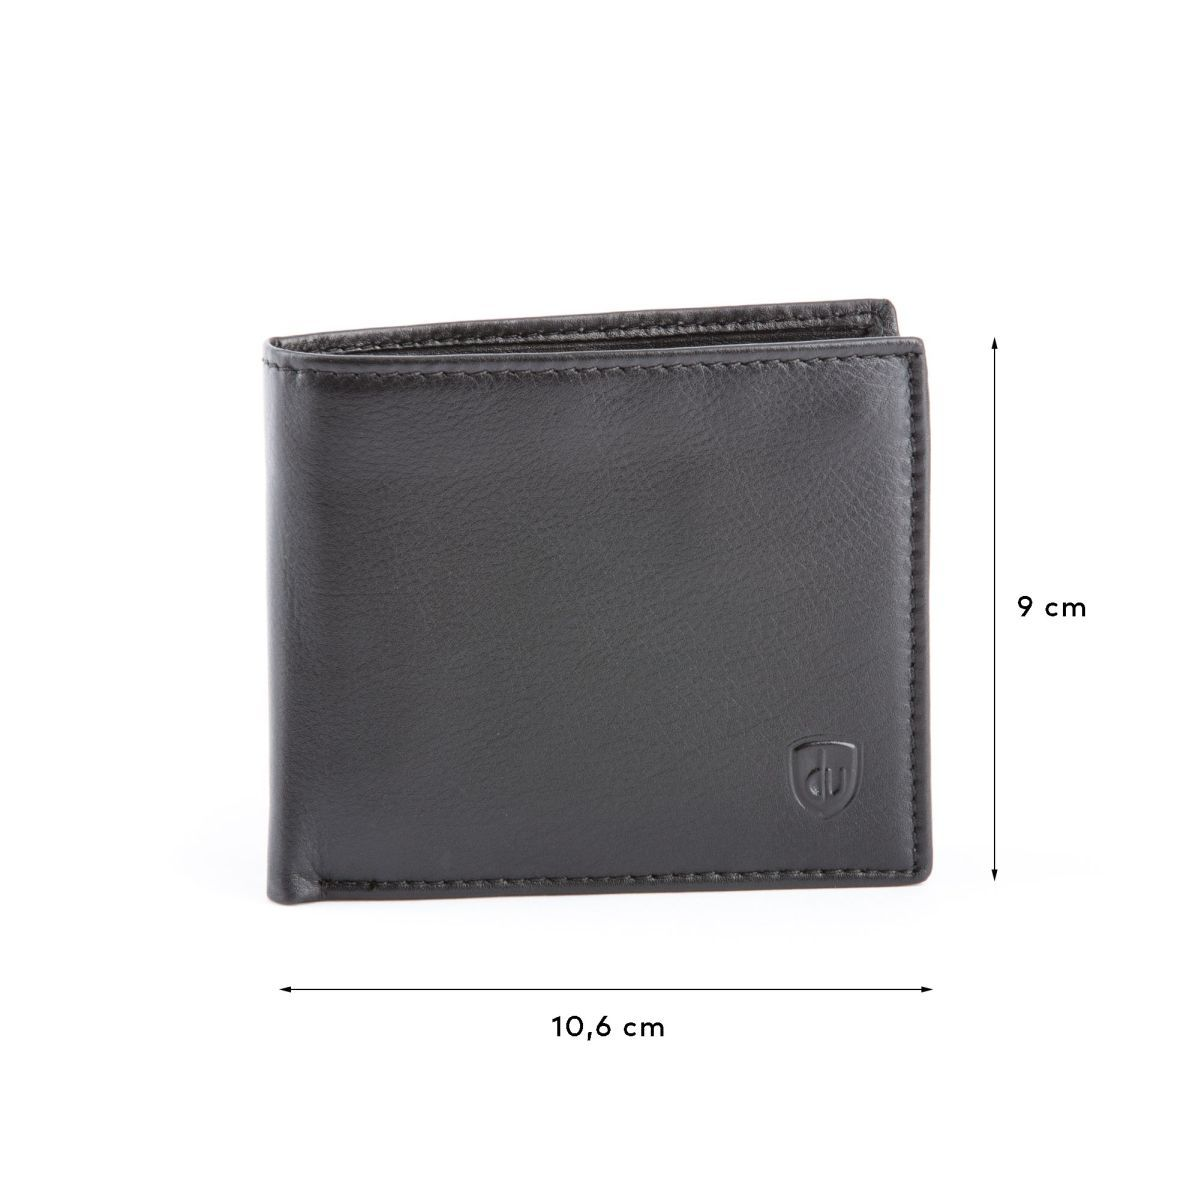 dv Compact Leather Wallet With Coin Pocket - Black